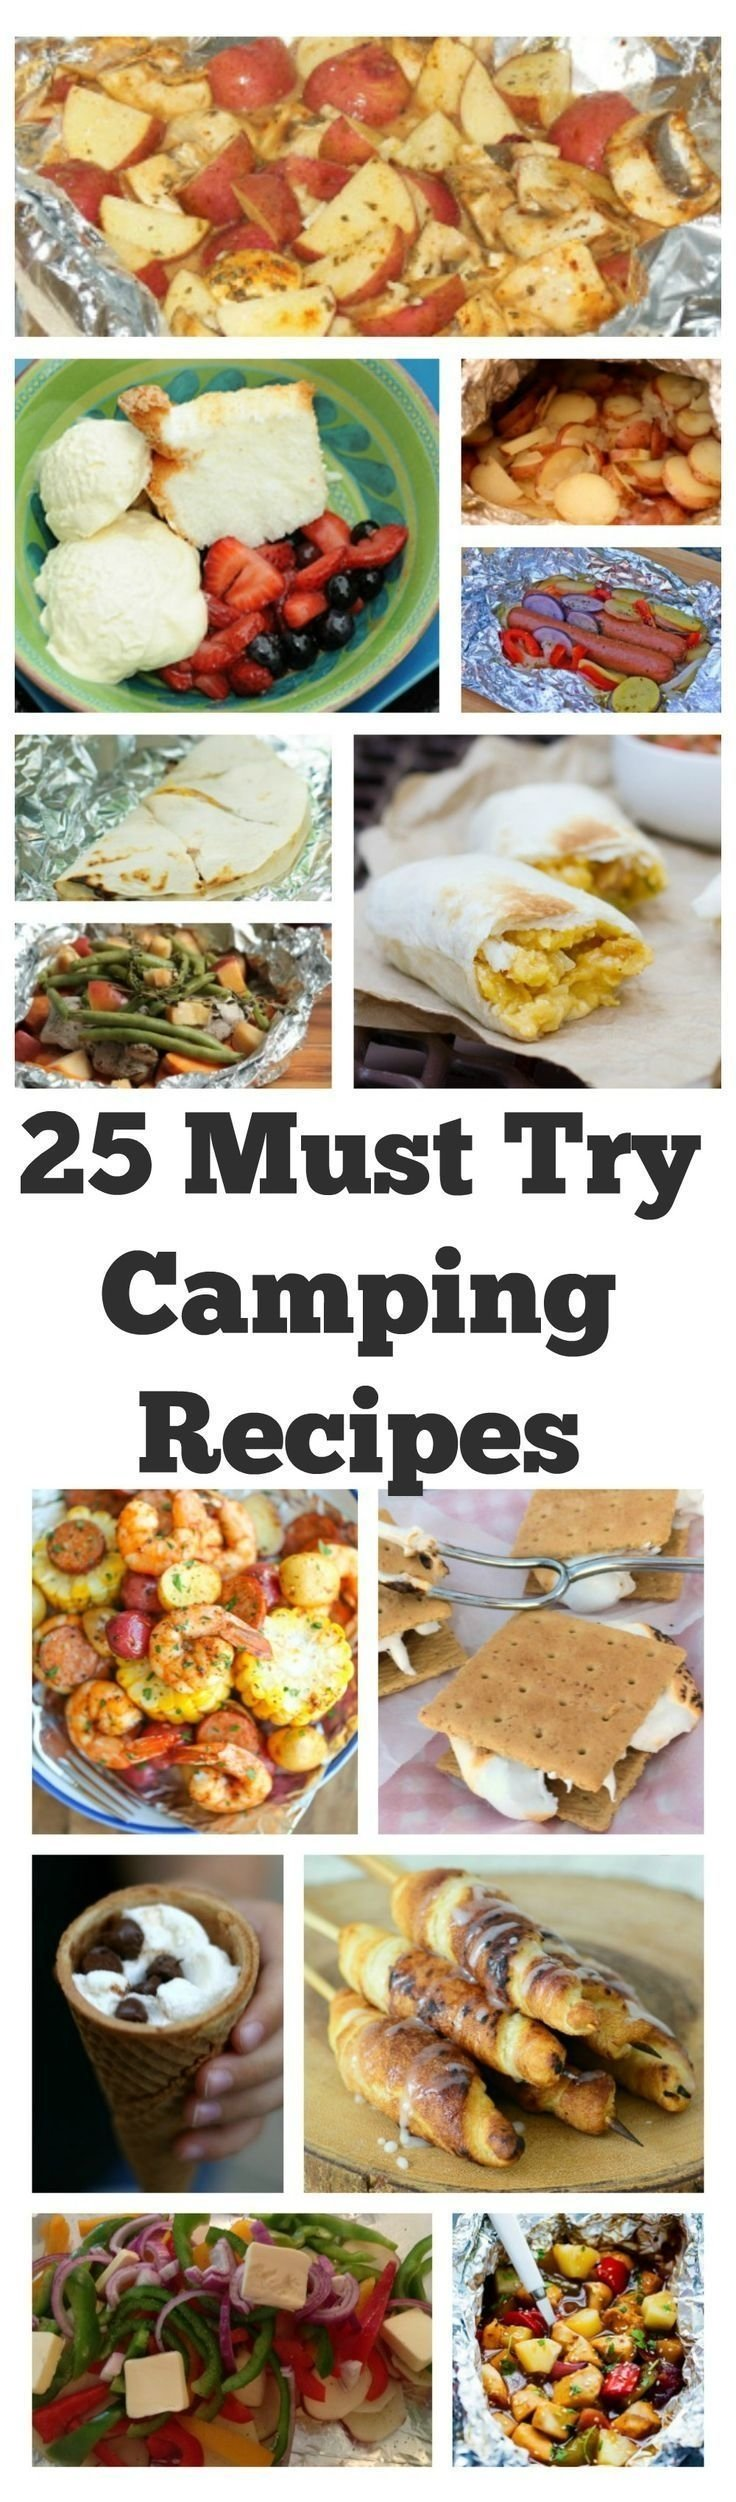 10 Most Recommended Camping Dinner Ideas For Large Groups 25 must try camping recipes if you love camping as much as we do 2021